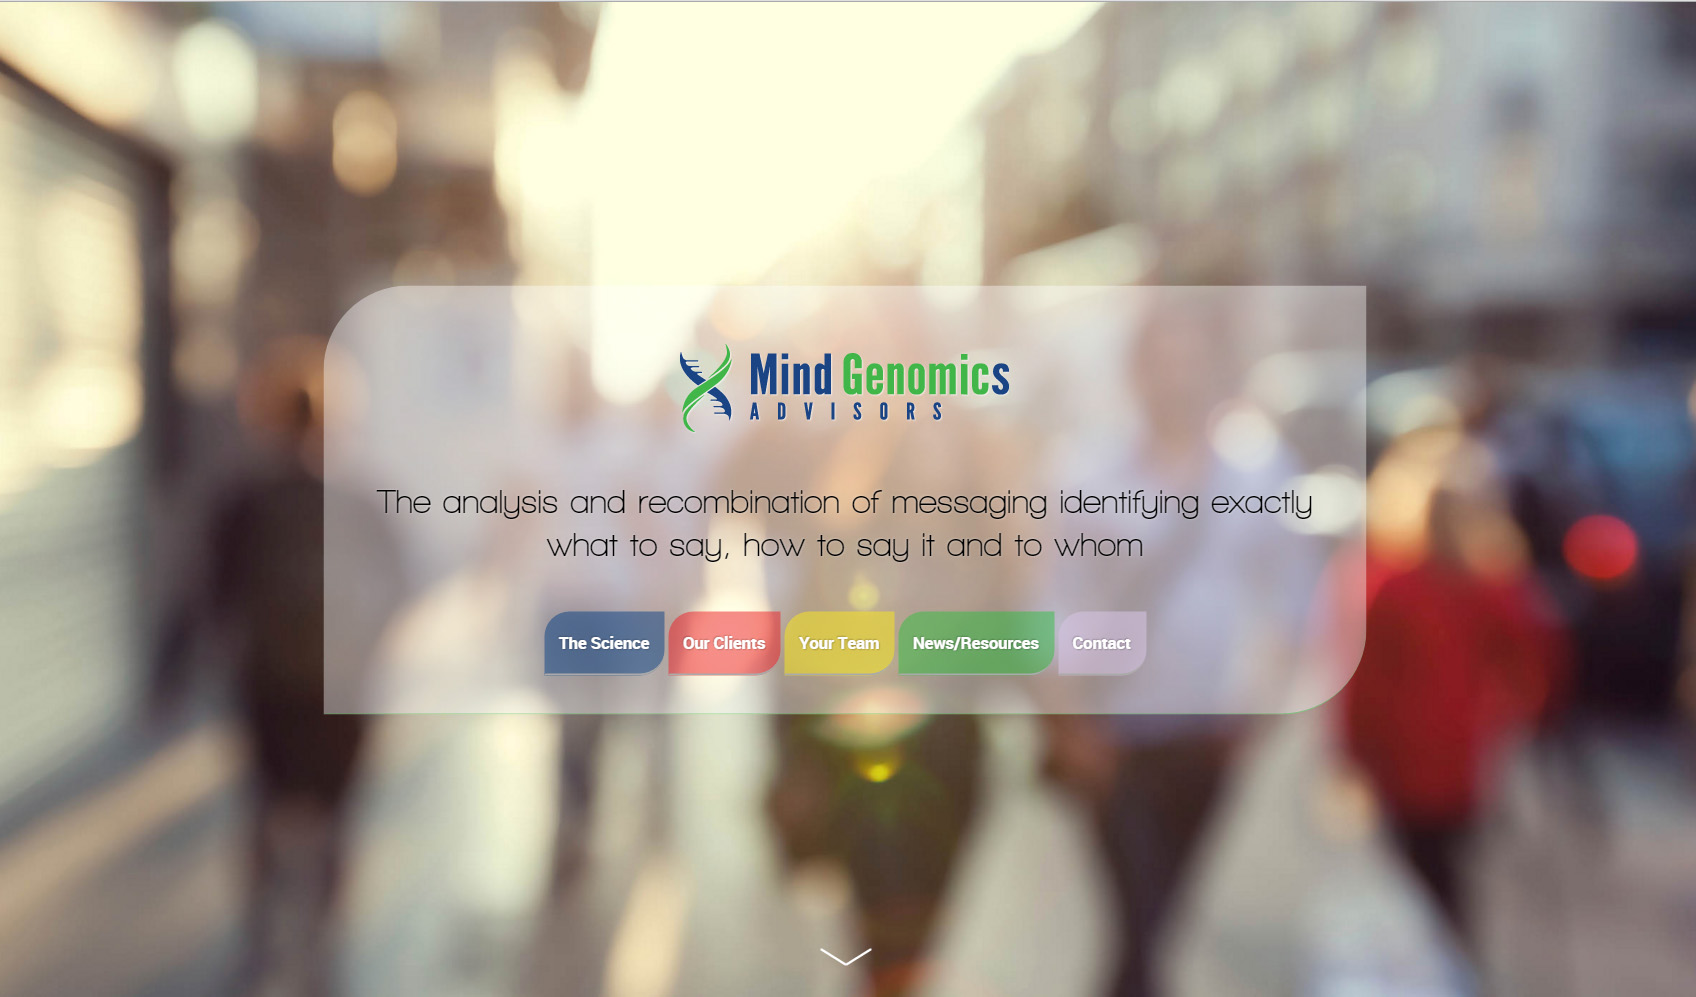 Mind Genomics